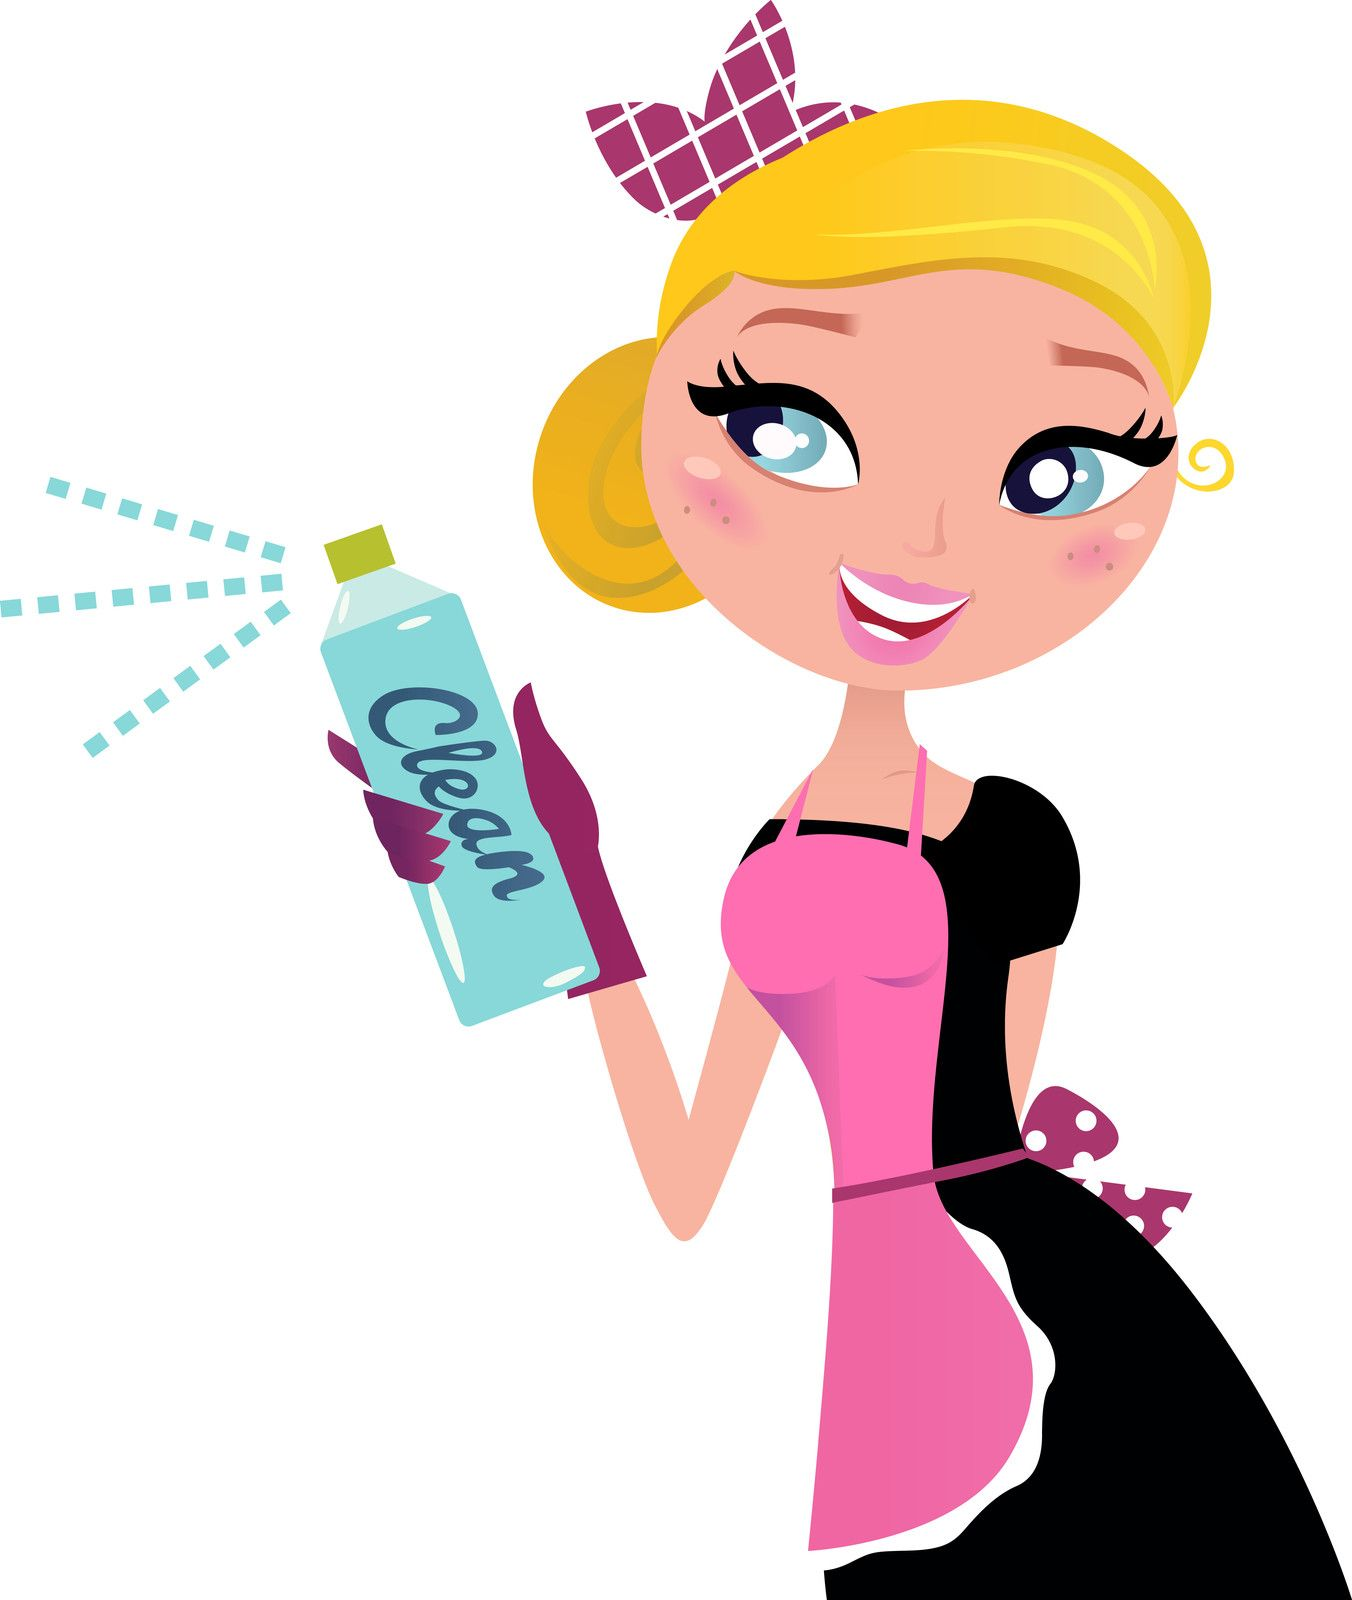 Maid clipart maid service. Pin on vision board